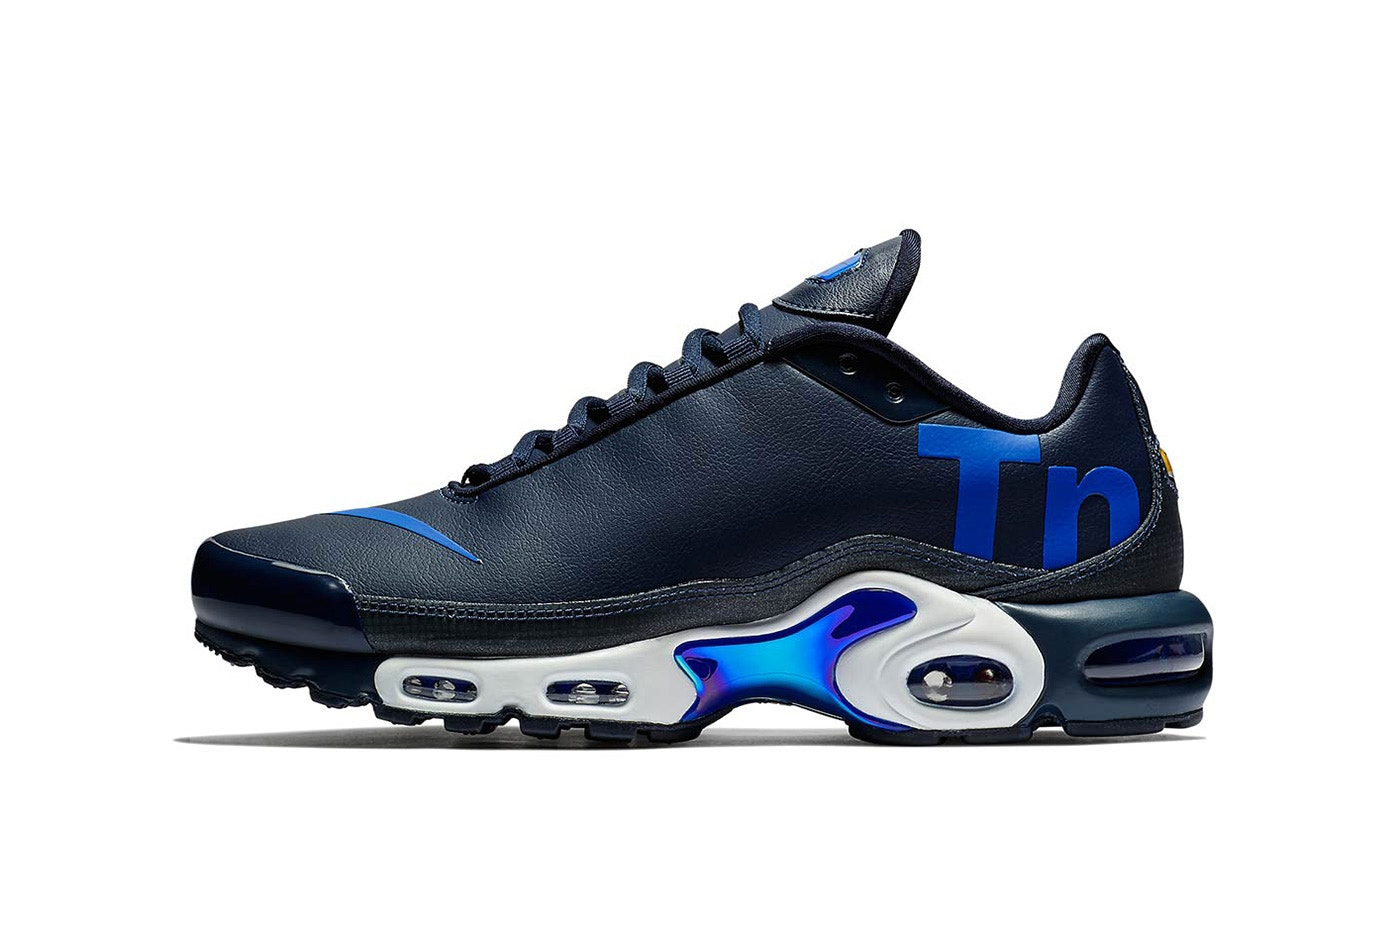 Tuned Air Gets A Remix With The Nike Mercurial Tn In Navy